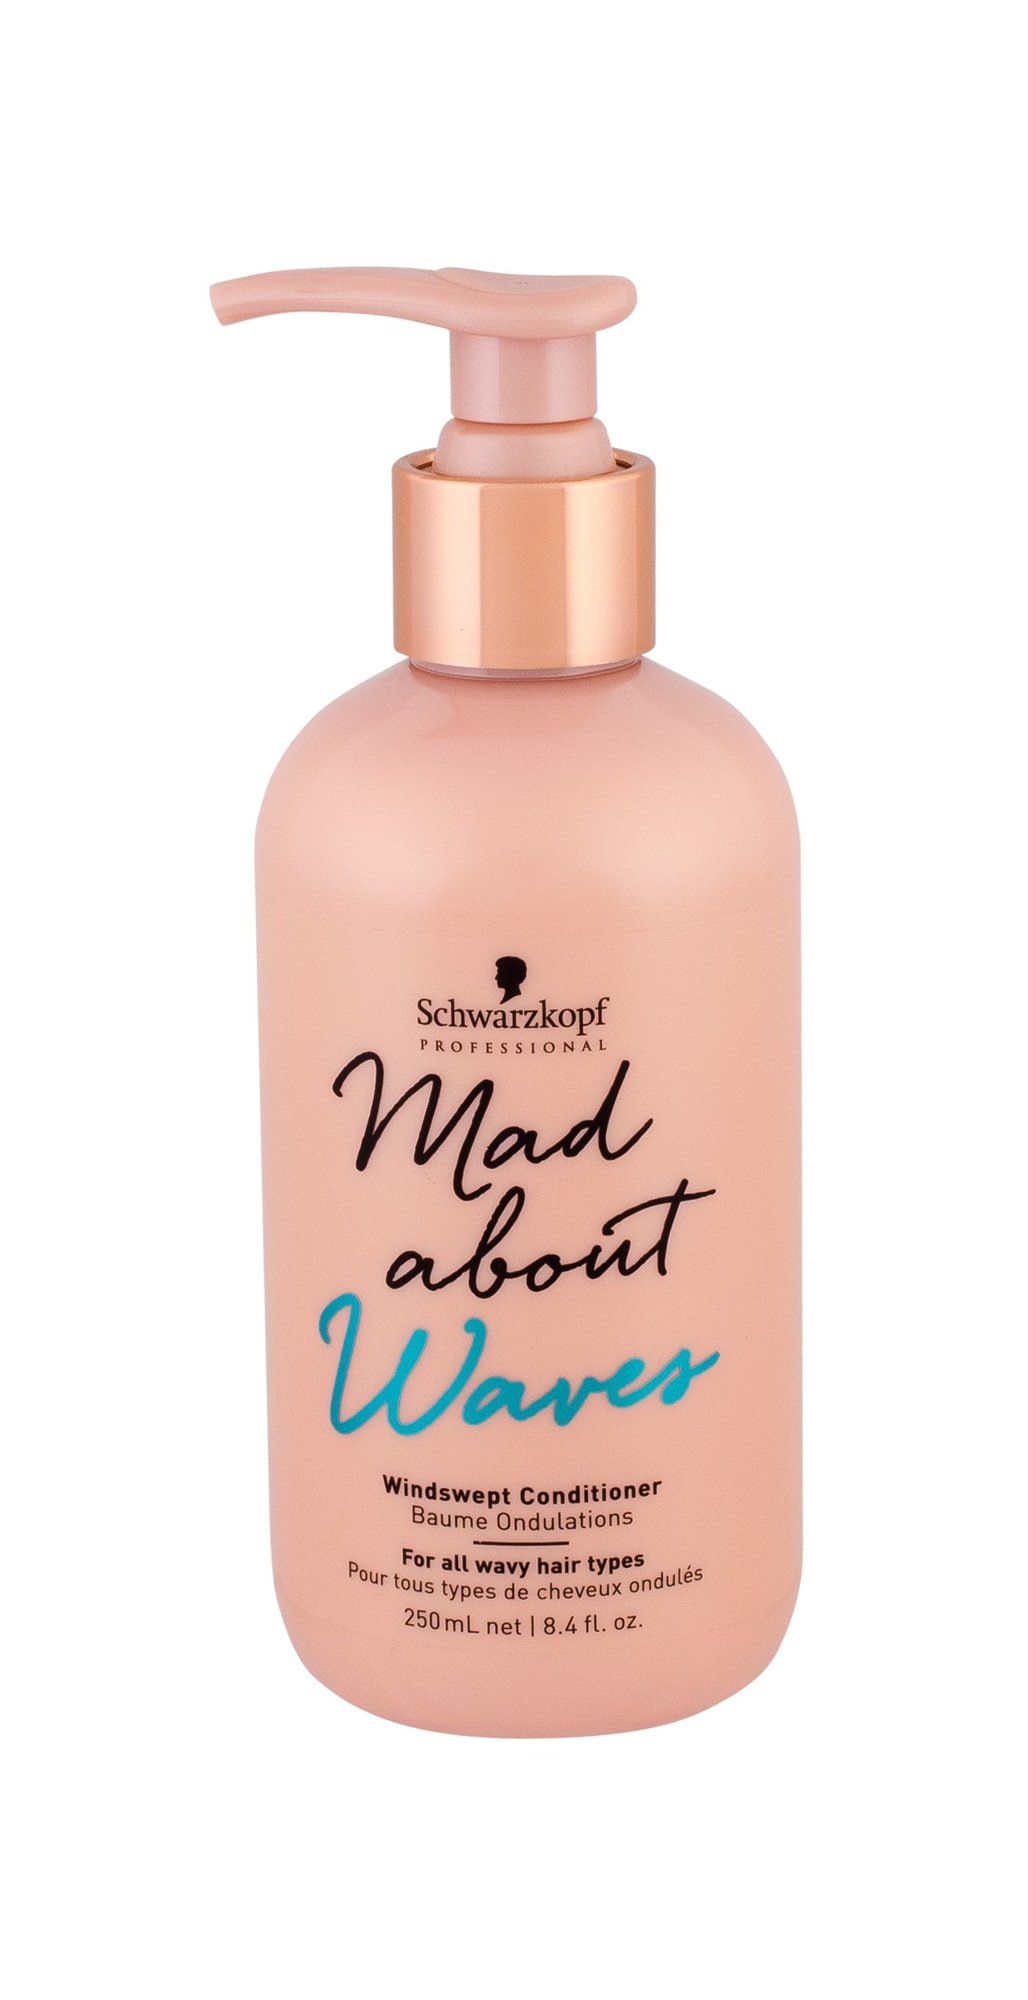 Schwarzkopf Professional Mad About Waves Conditioner 250ml